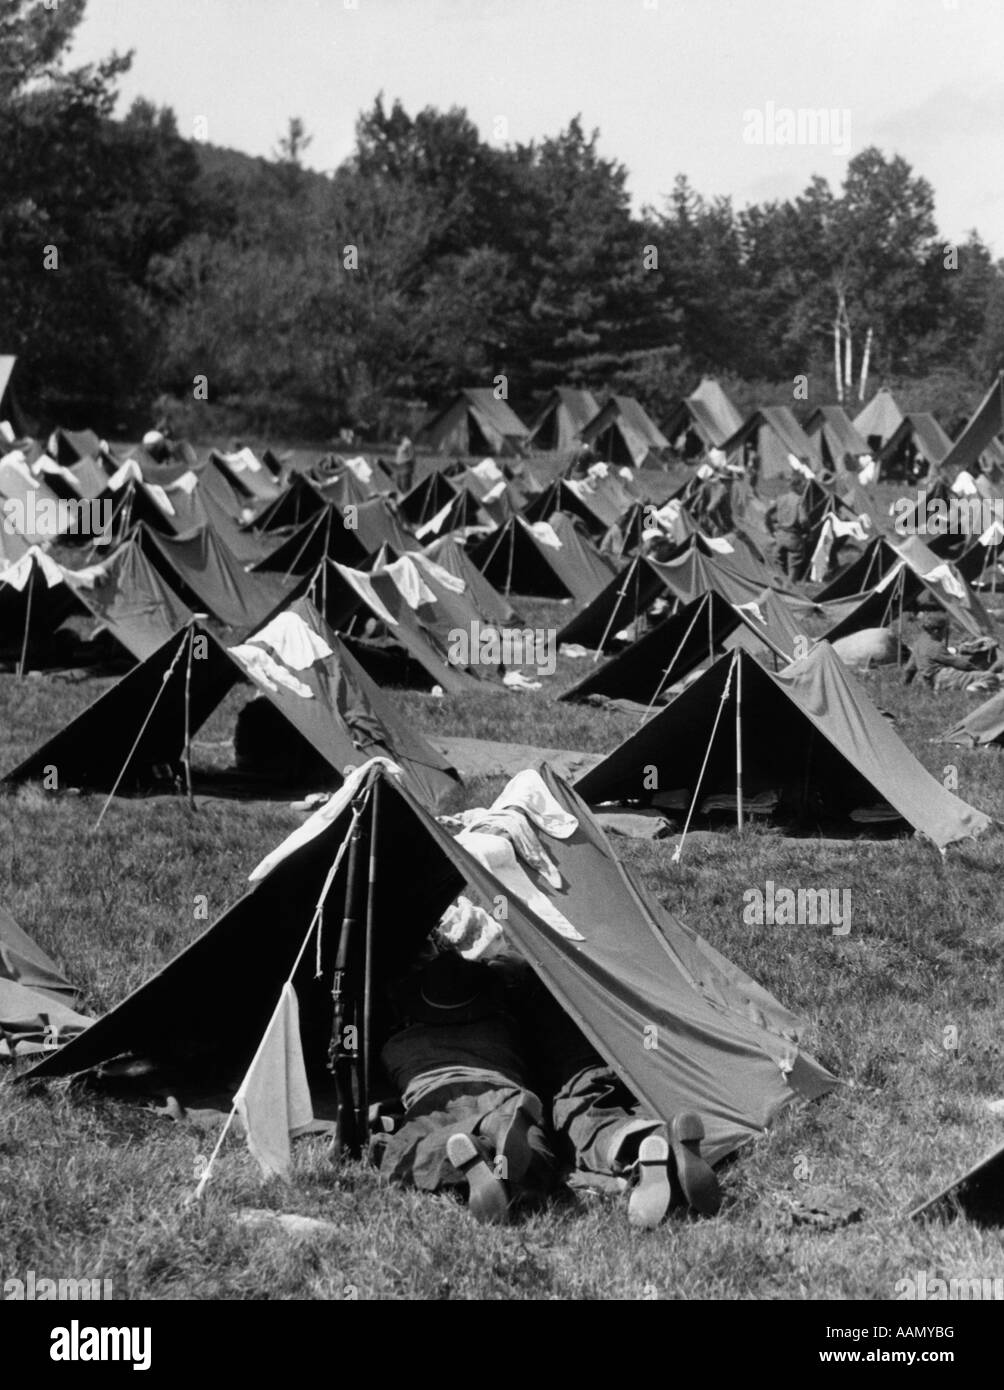 1940s WORLD WAR II SOLDIER PUP TENTS & 1940s WORLD WAR II SOLDIER PUP TENTS Stock Photo Royalty Free ...